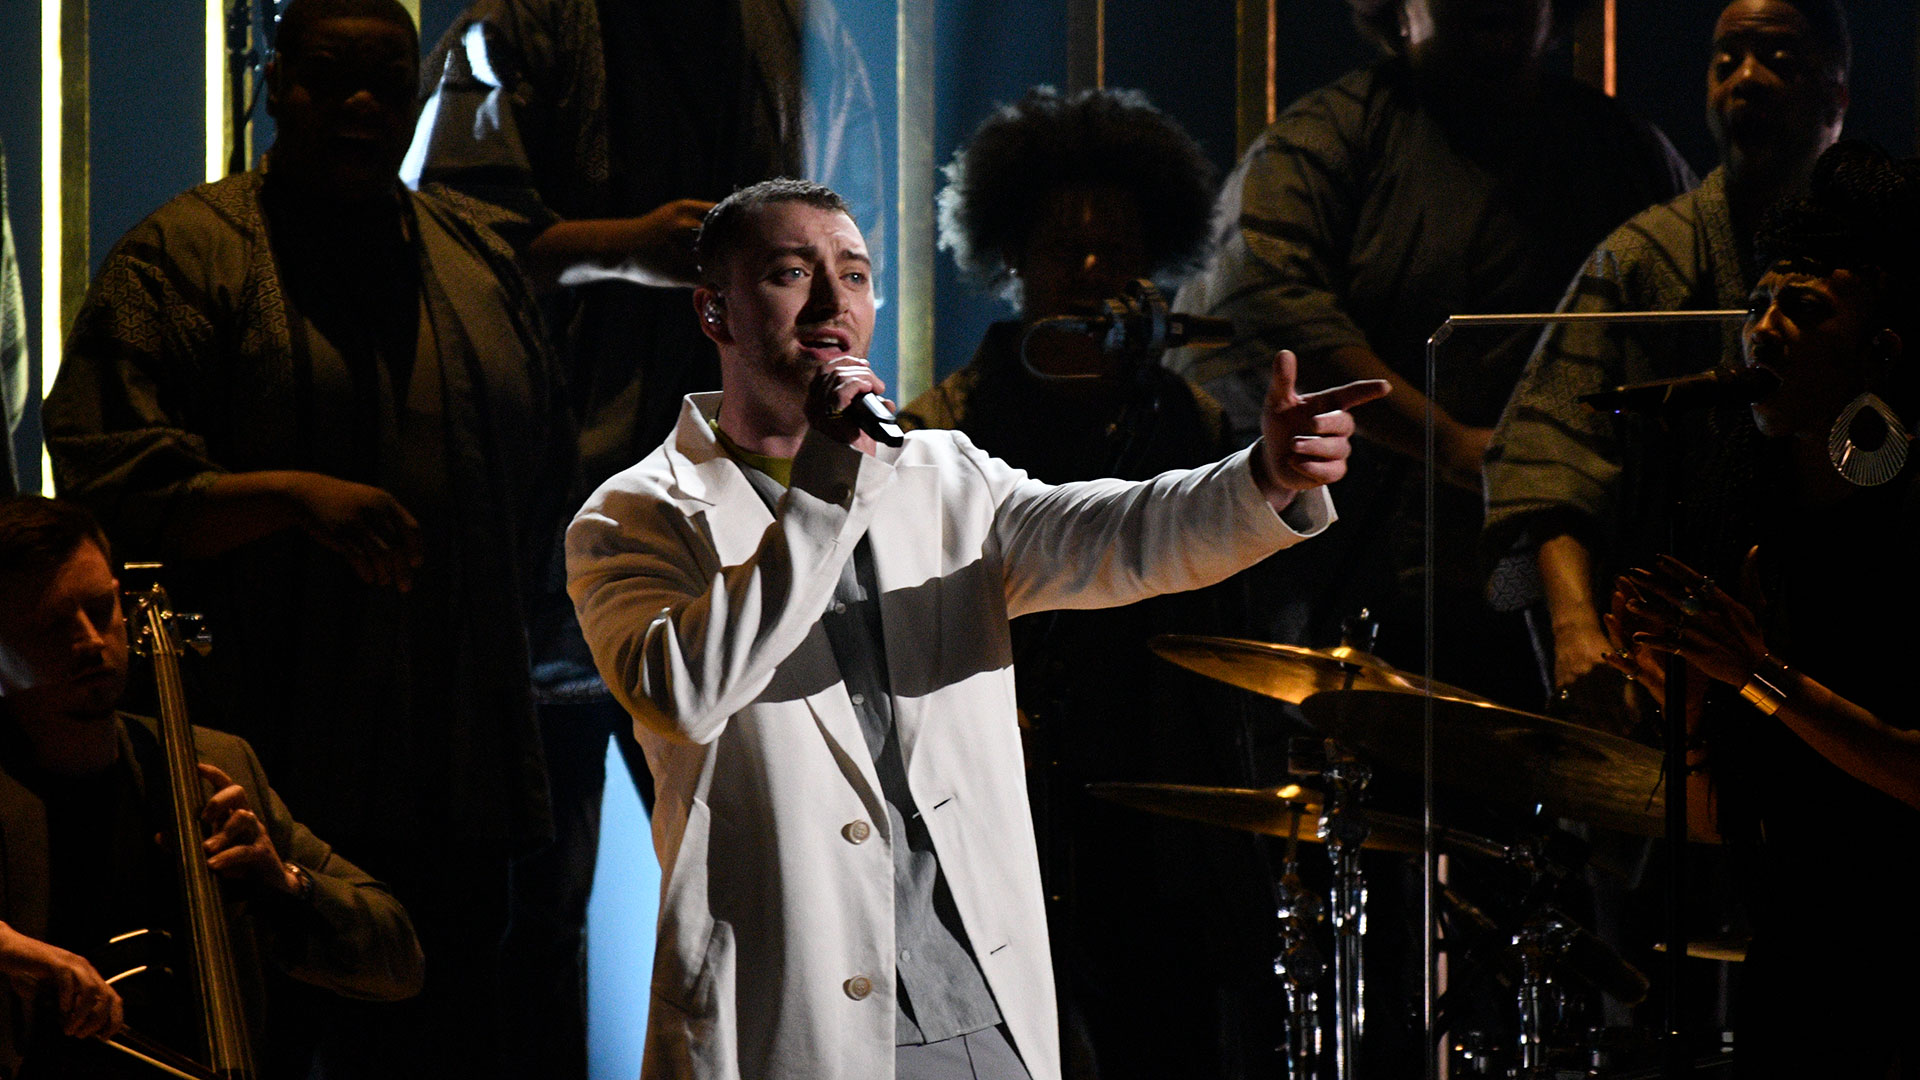 Sam Smith performs his powerful single